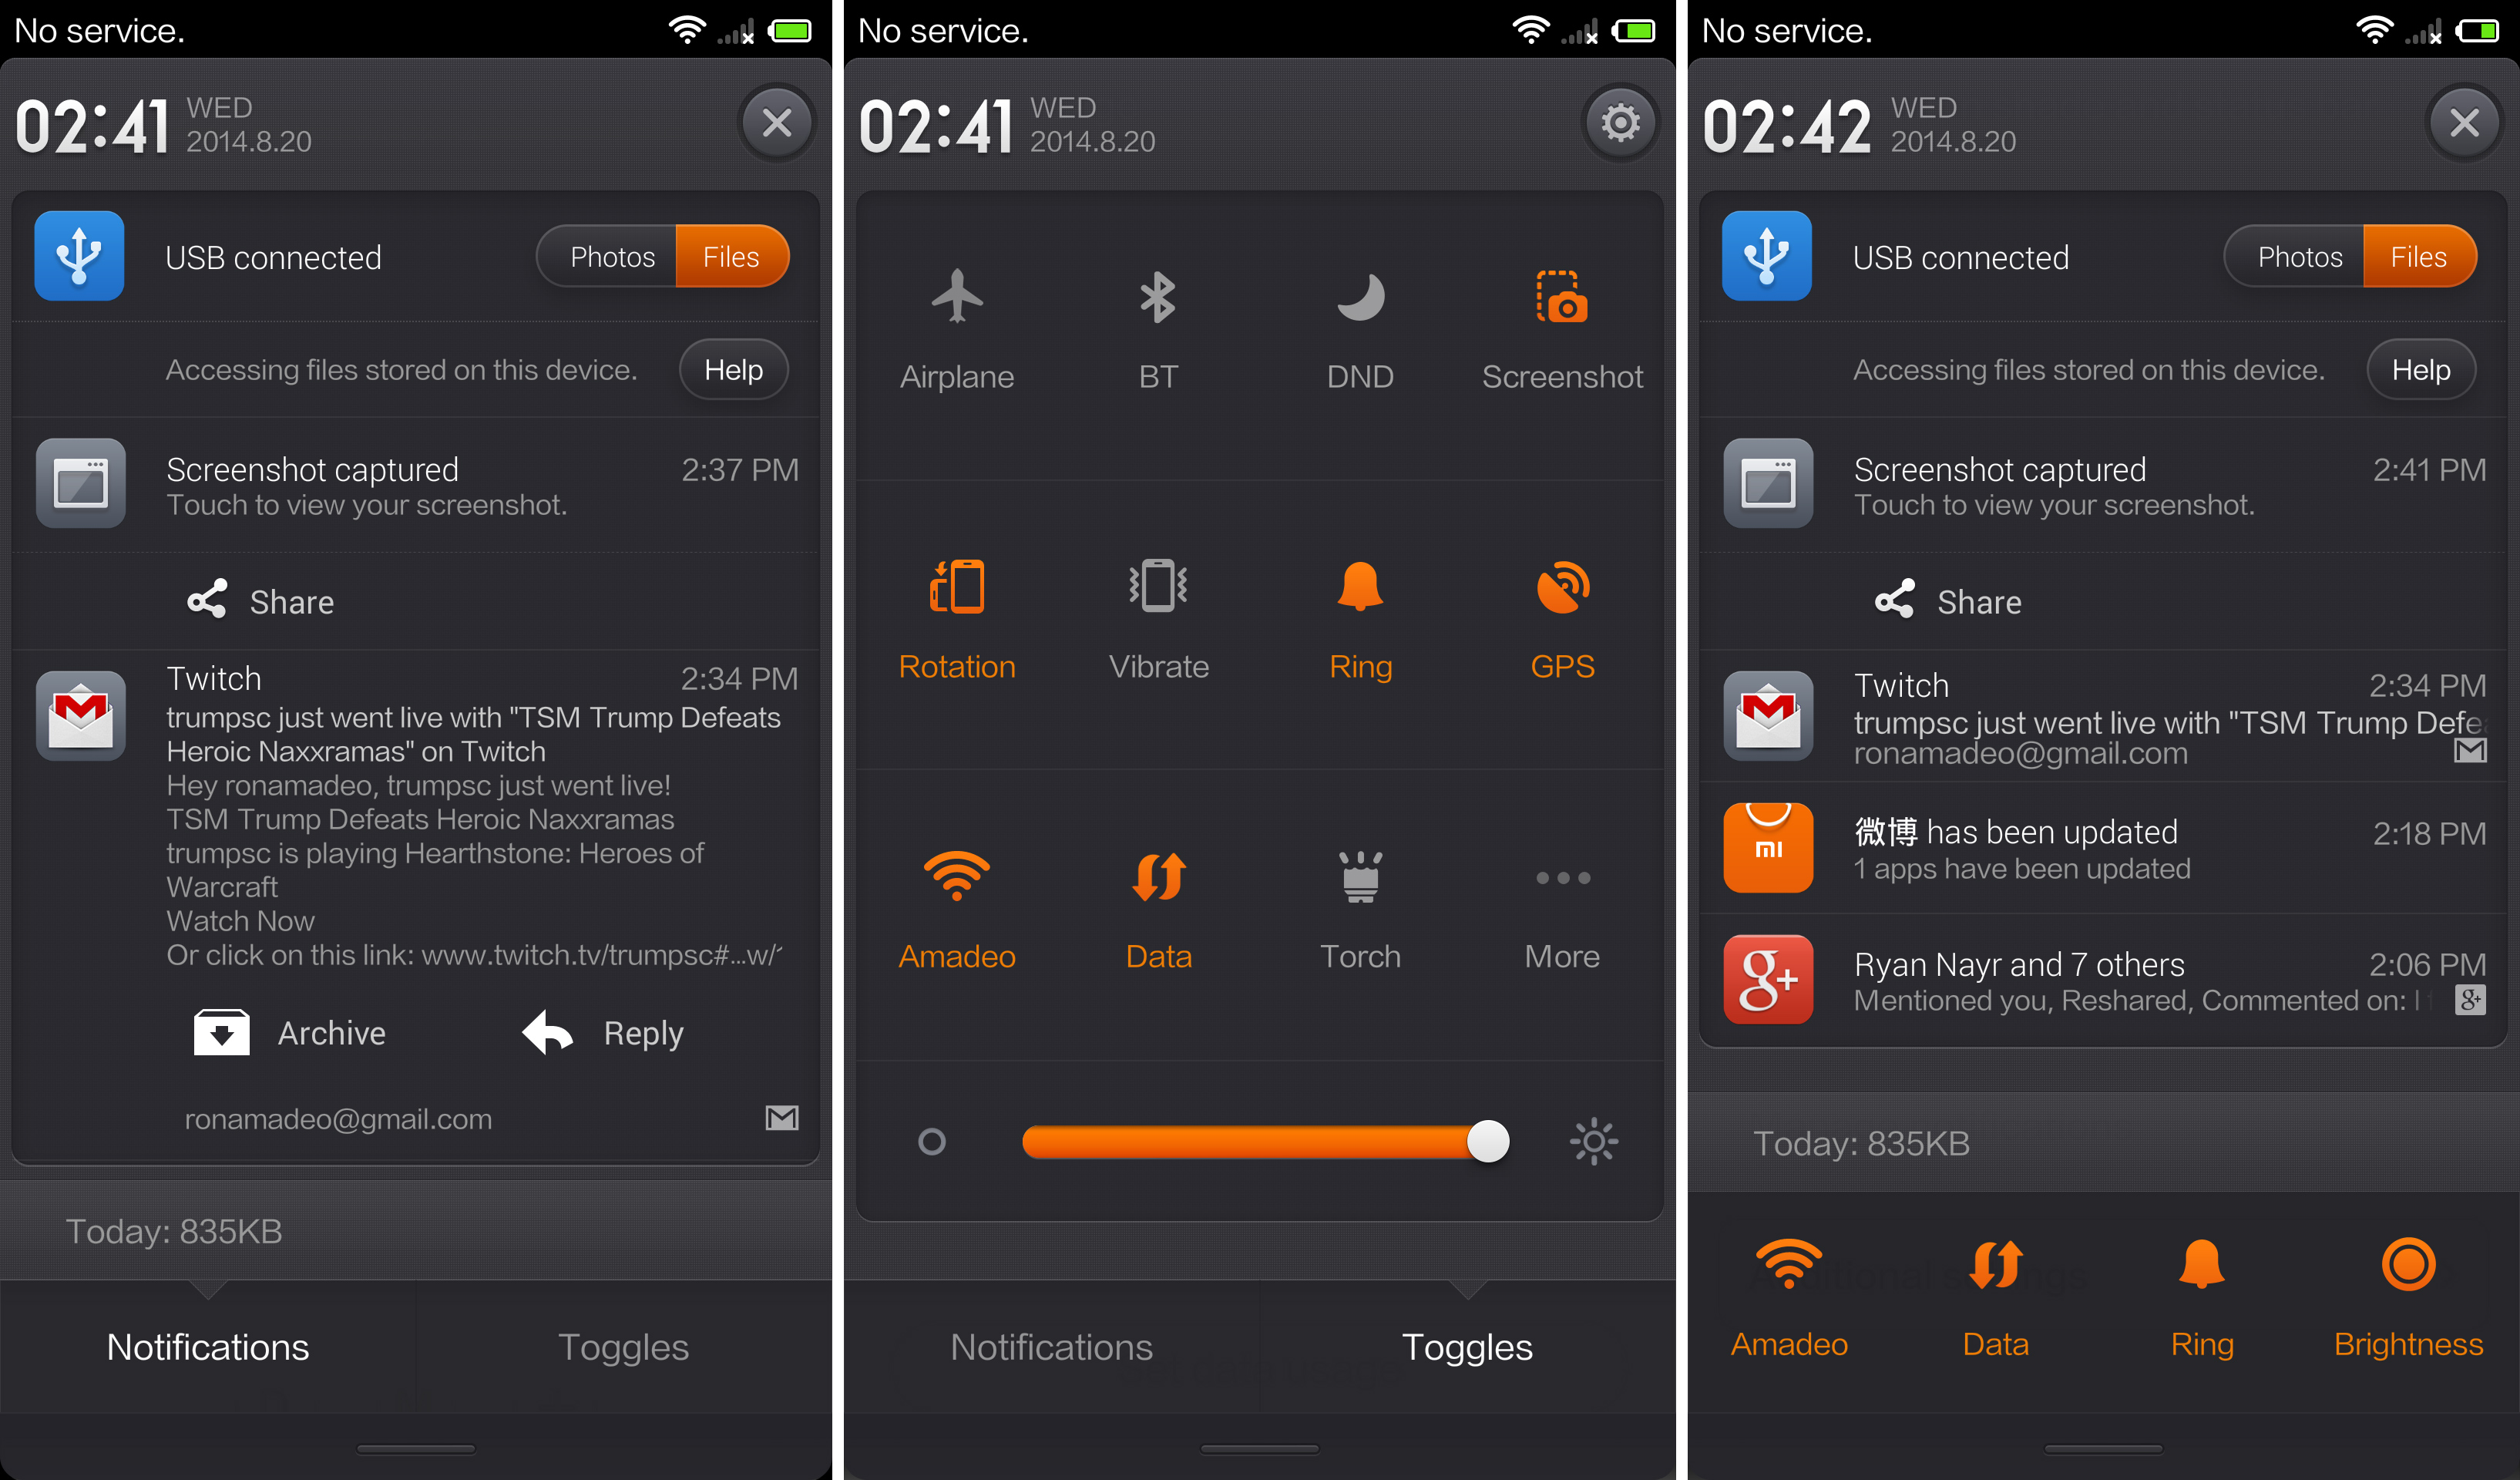 The Notification panel, toggles, and the optional Samsung-style notifications andtoggles layout.